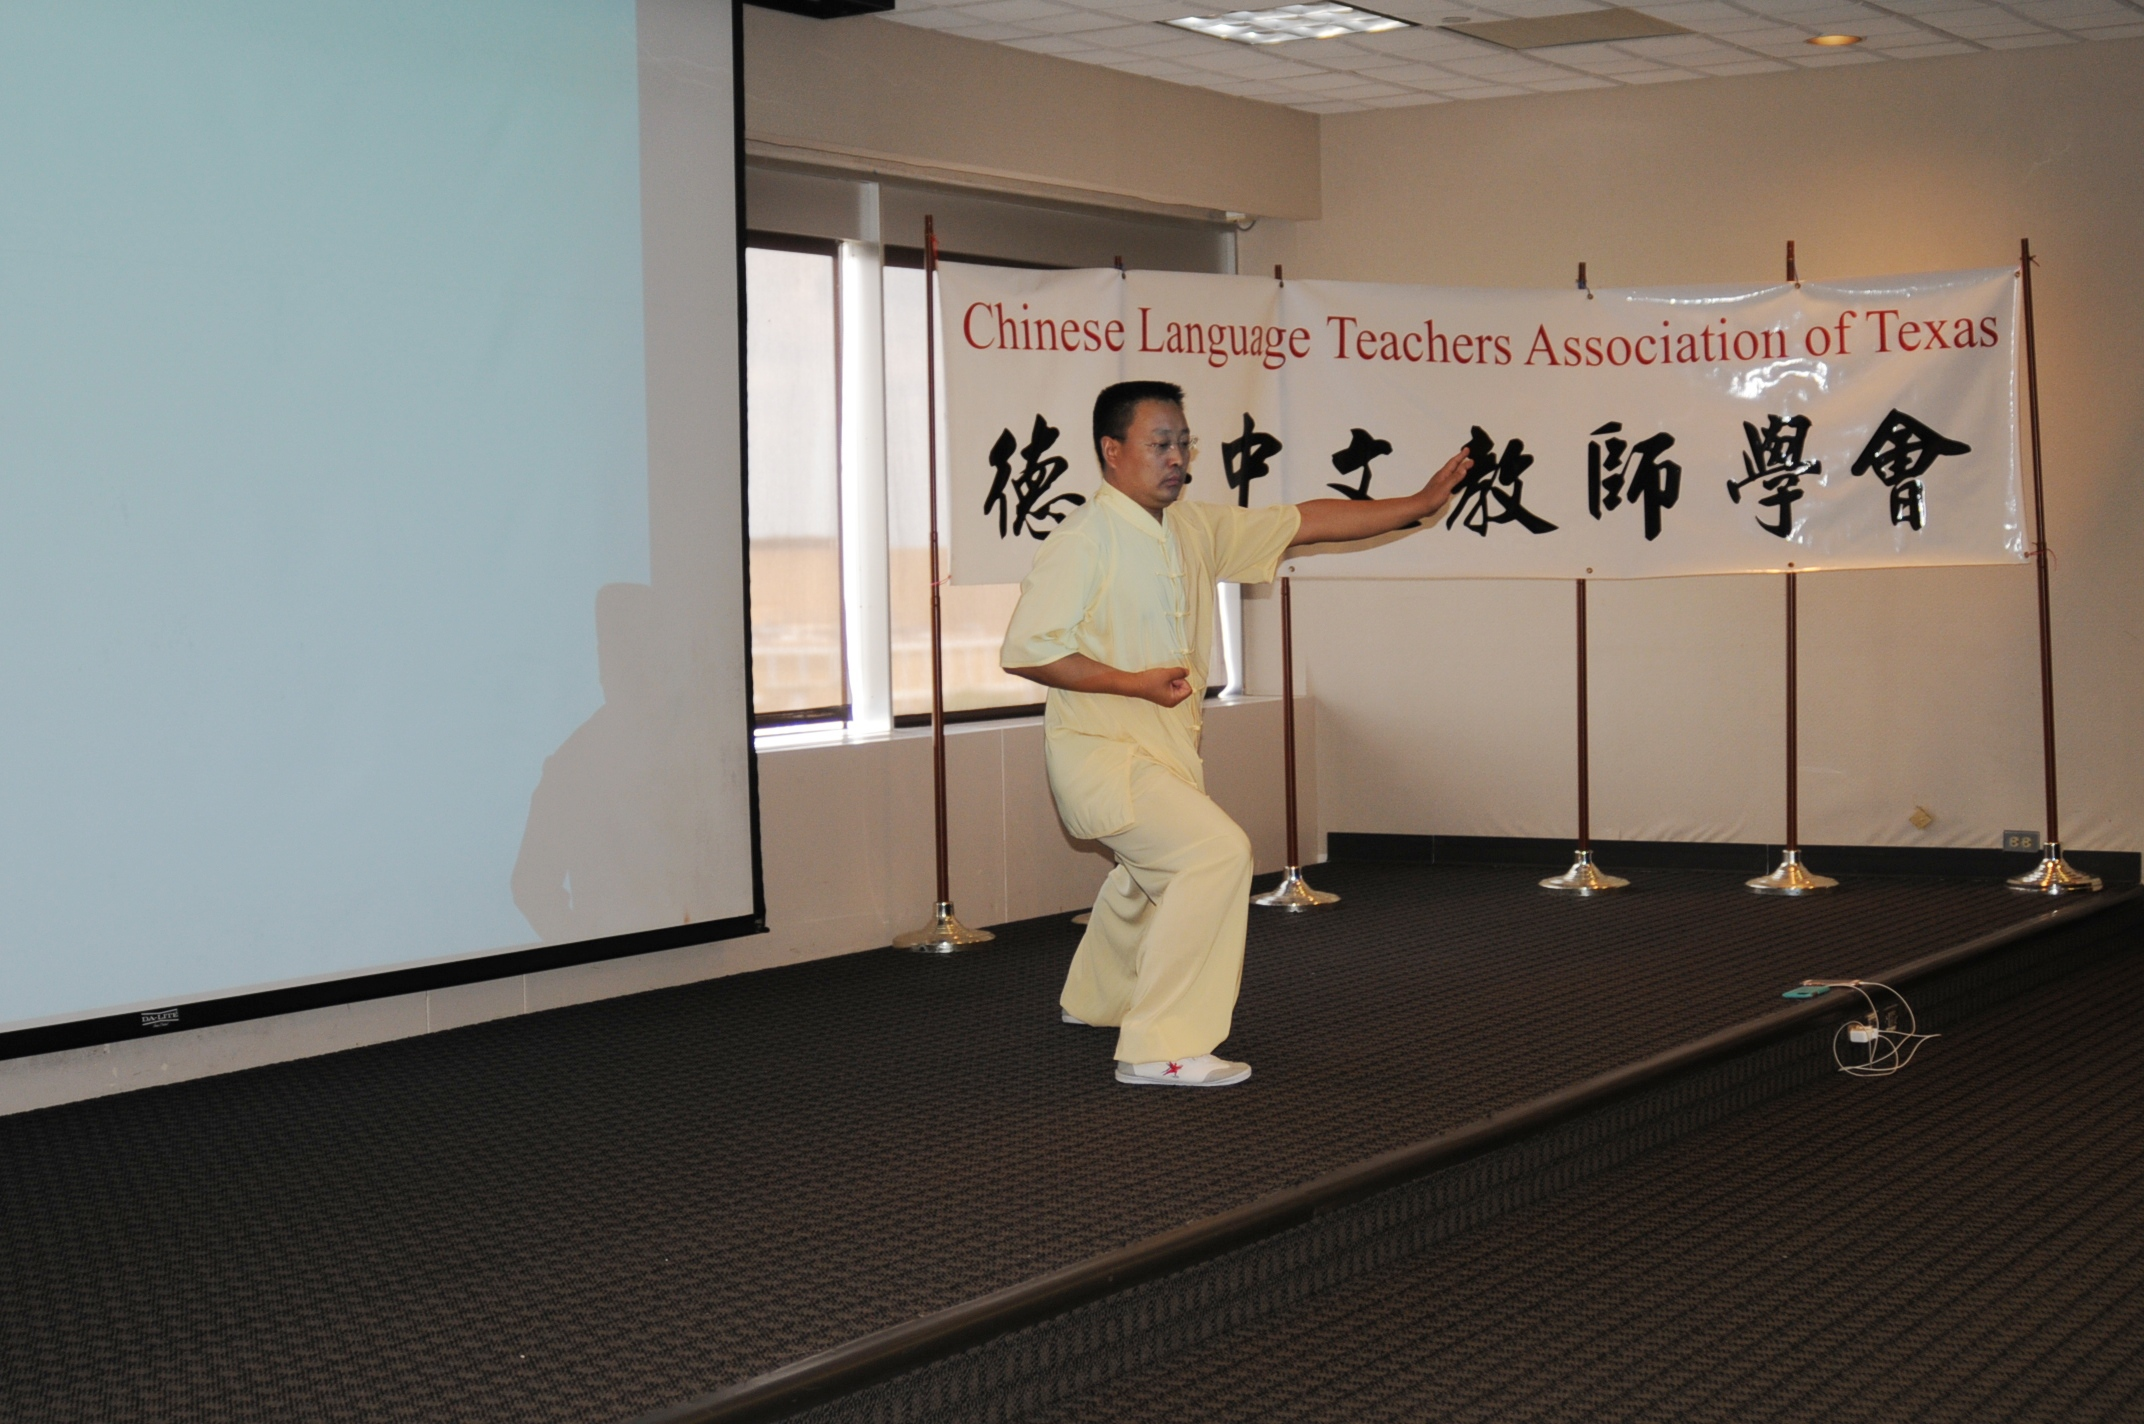 Mr. Aiguo Zhang, Taichi and Concentration demonstration.